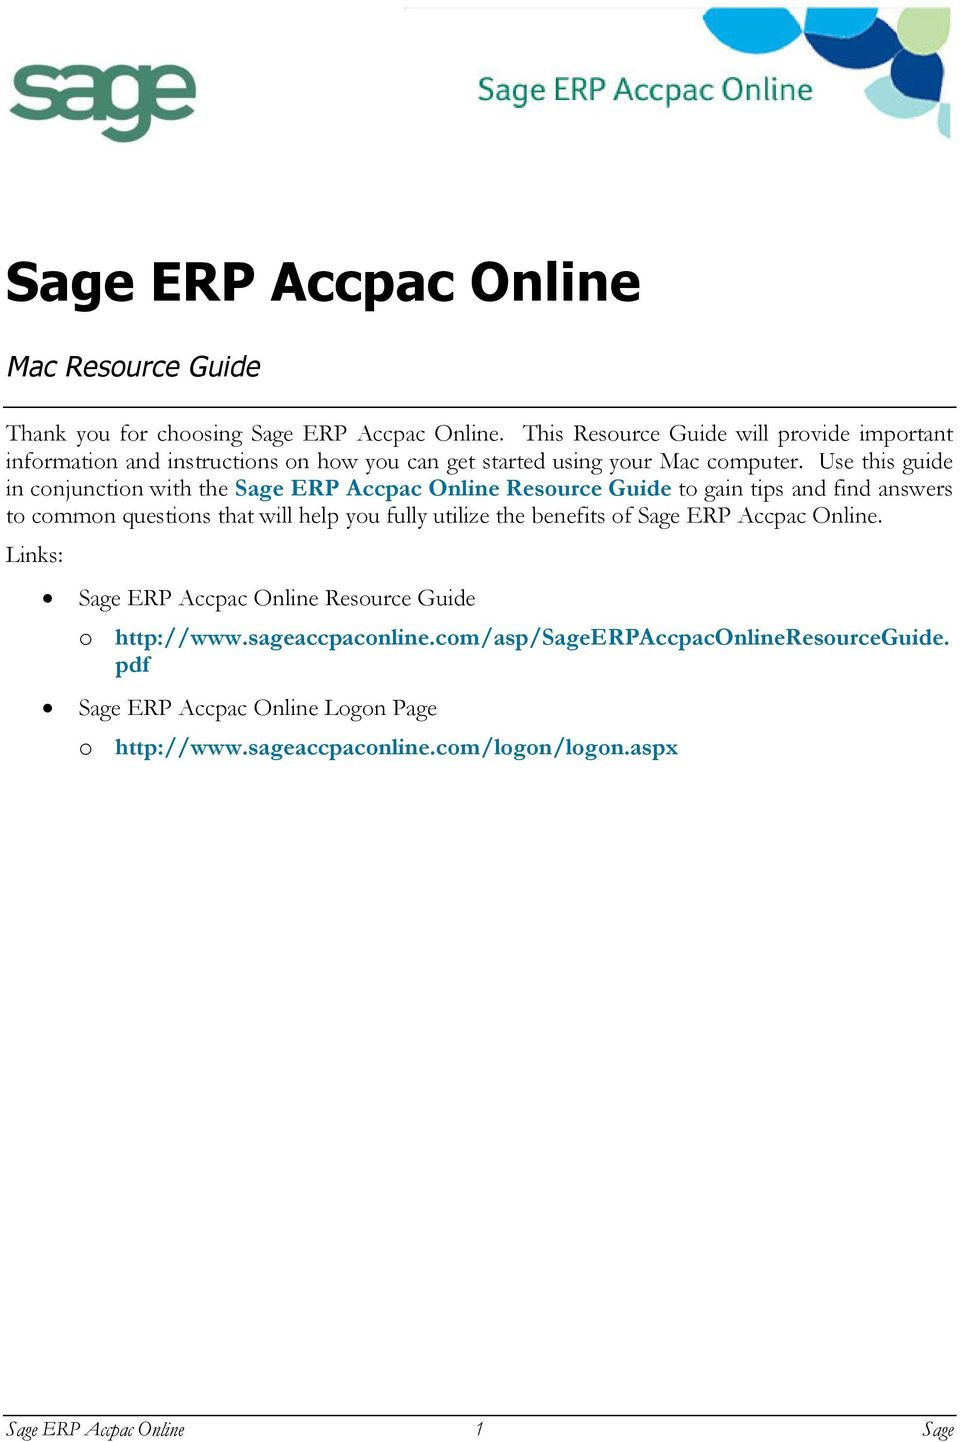 Use this guide in conjunction with the Sage ERP Accpac Online Resource Guide to gain tips and find answers to common questions that will help you fully utilize